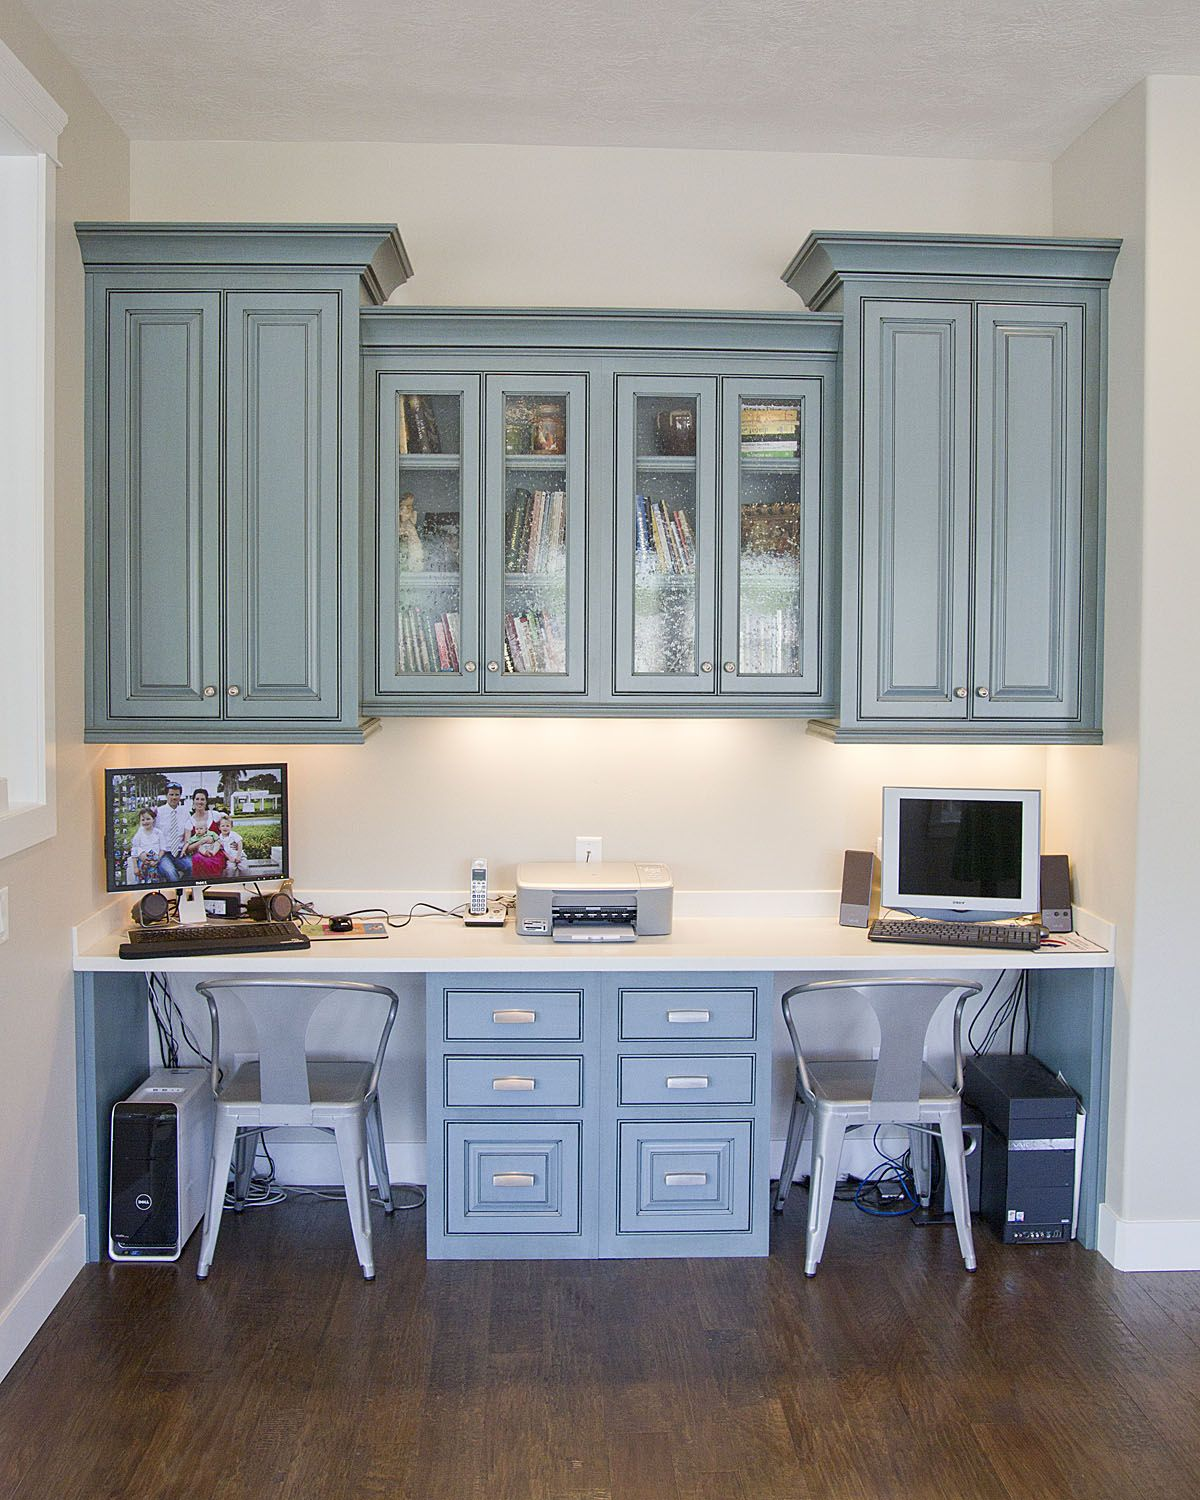 Pin by Belinda Ann on desk | Pinterest | Hanging cabinet, Desk areas ...